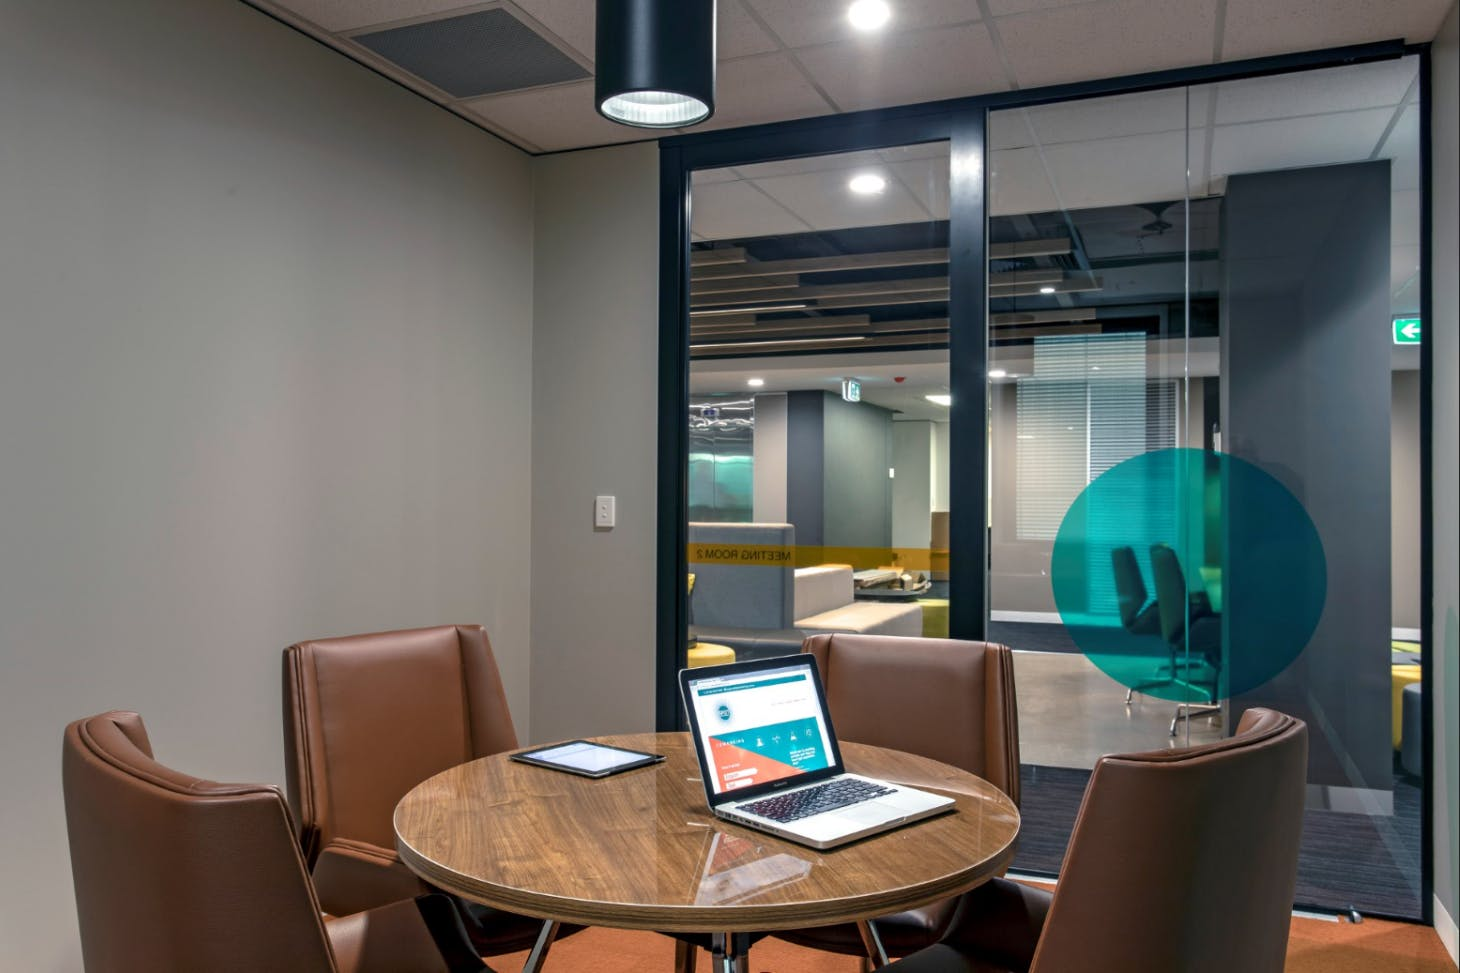 Suite 9, serviced office at Spot Co-Working, image 4